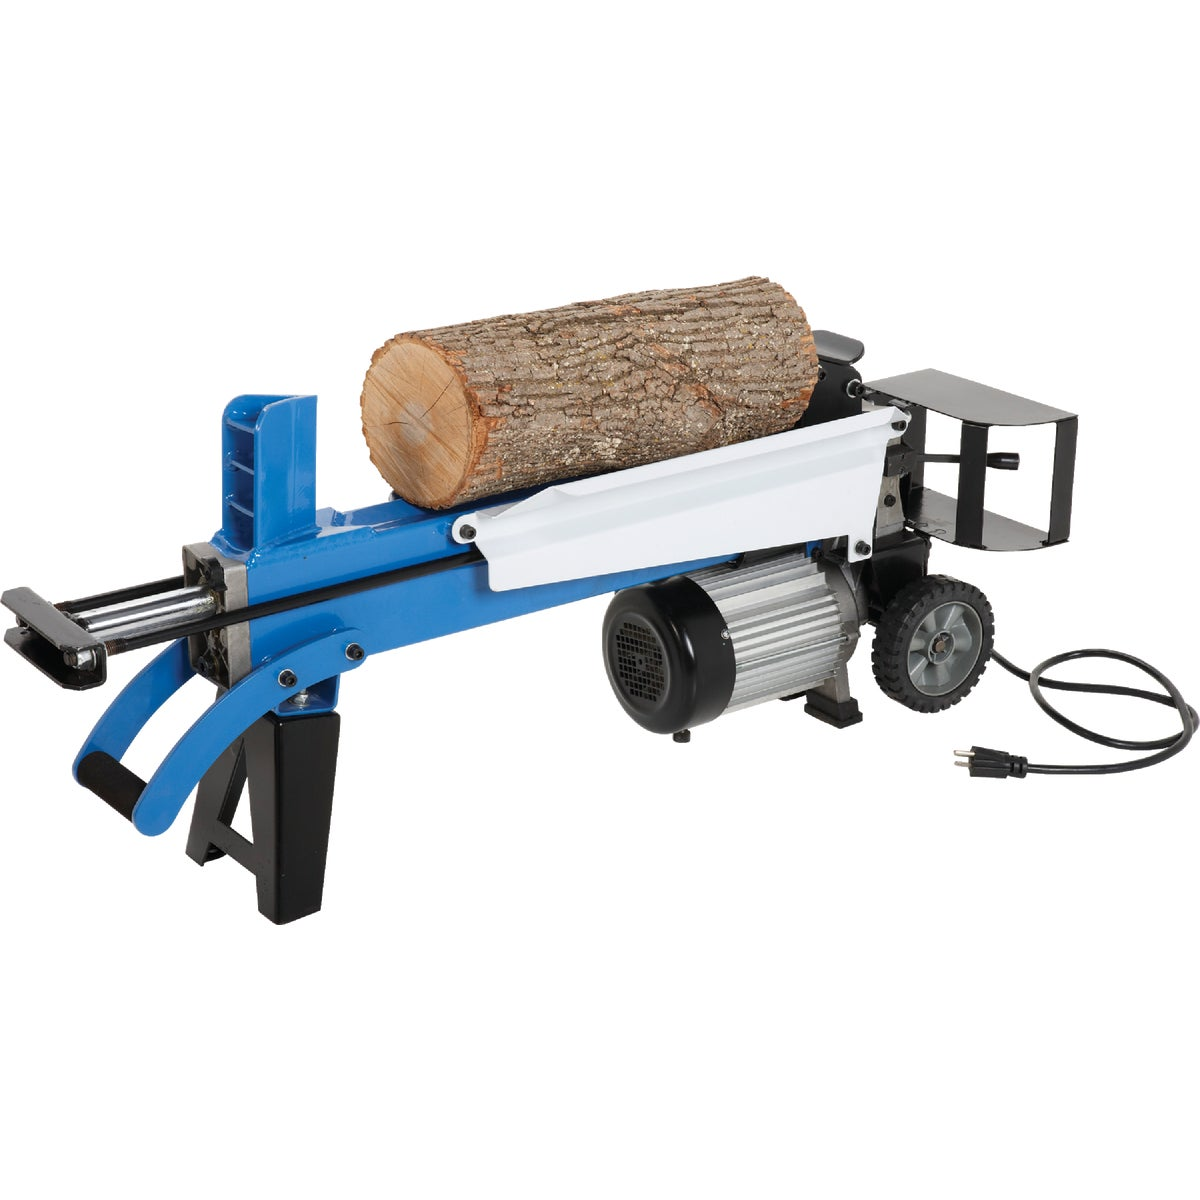 5 TON ELEC LOG SPLITTER - 65558 by Do it Best